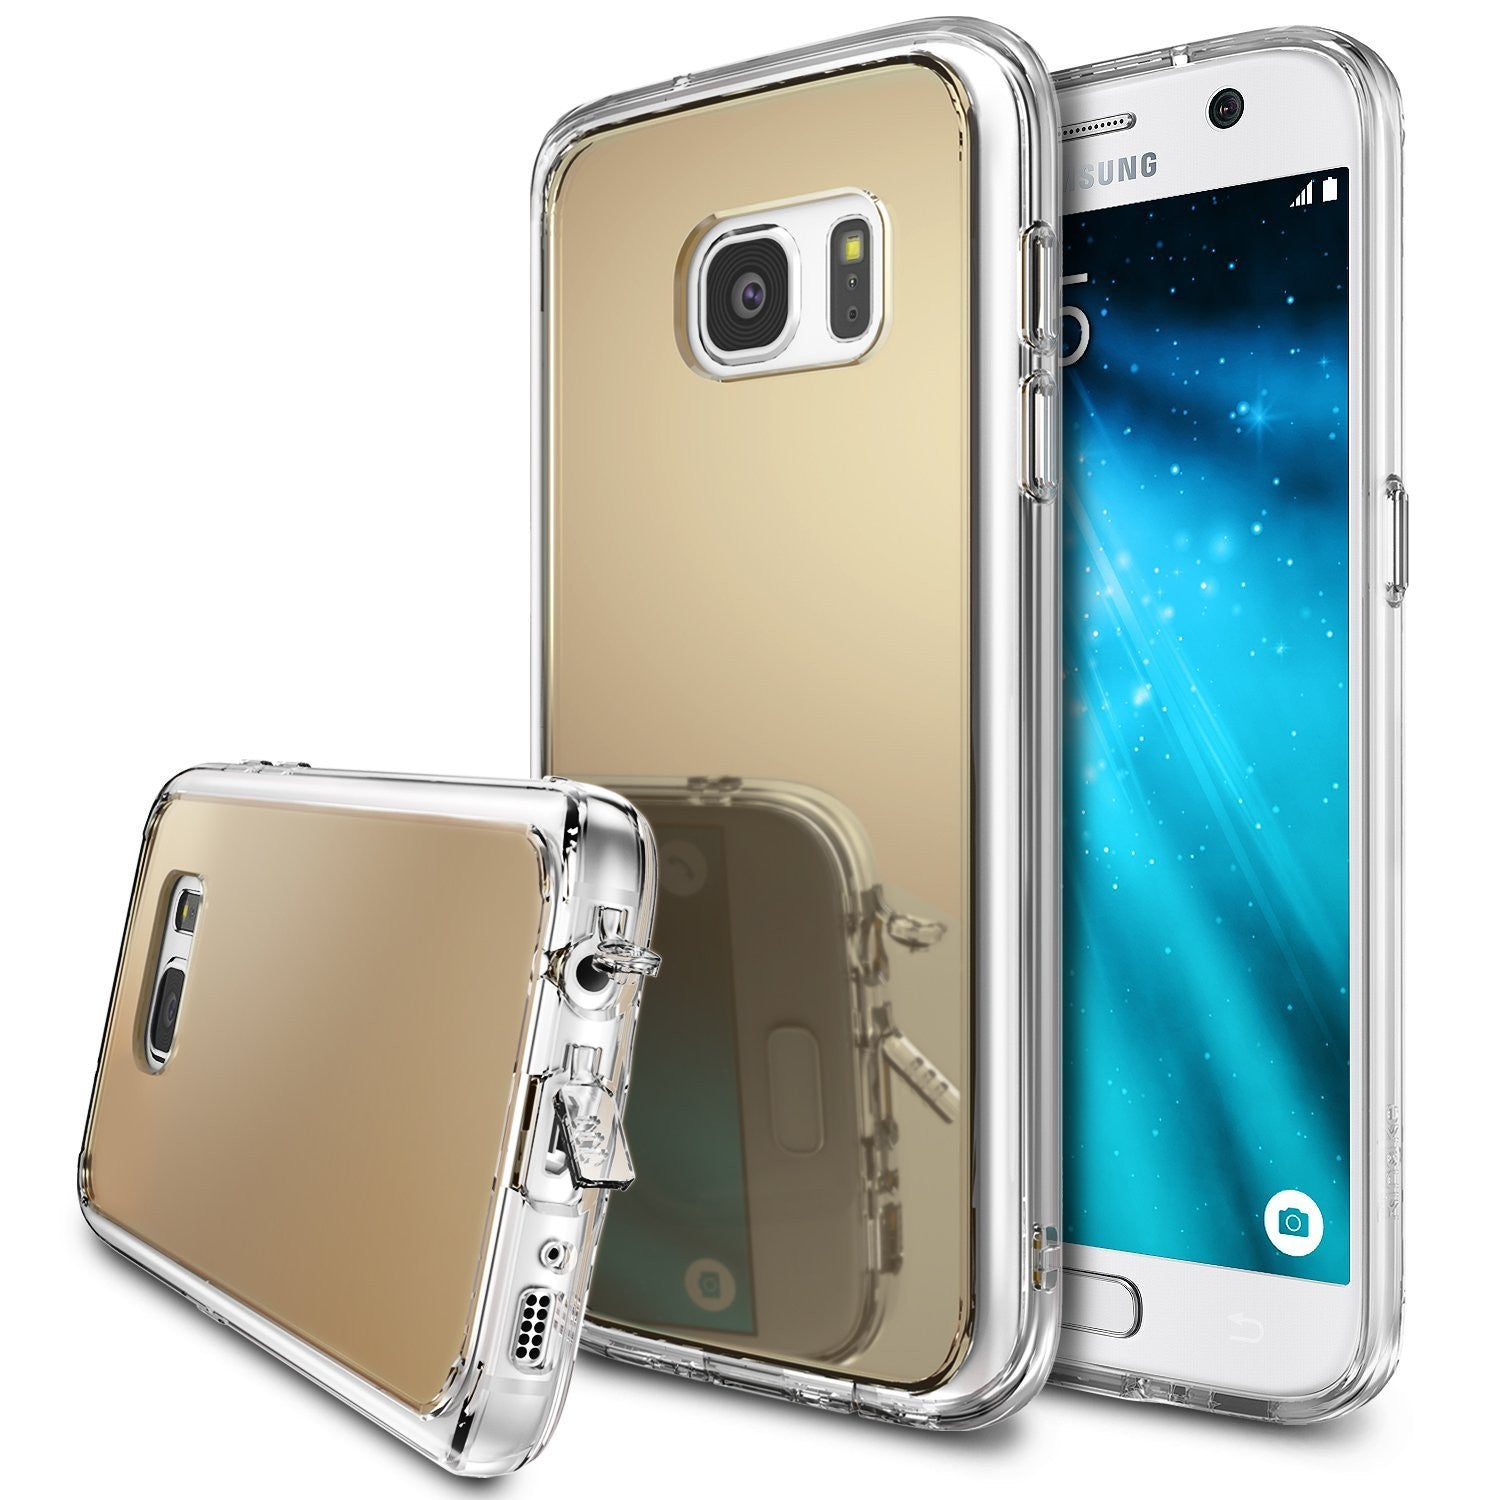 ringke mirror back cover case for galaxy s7 royal gold